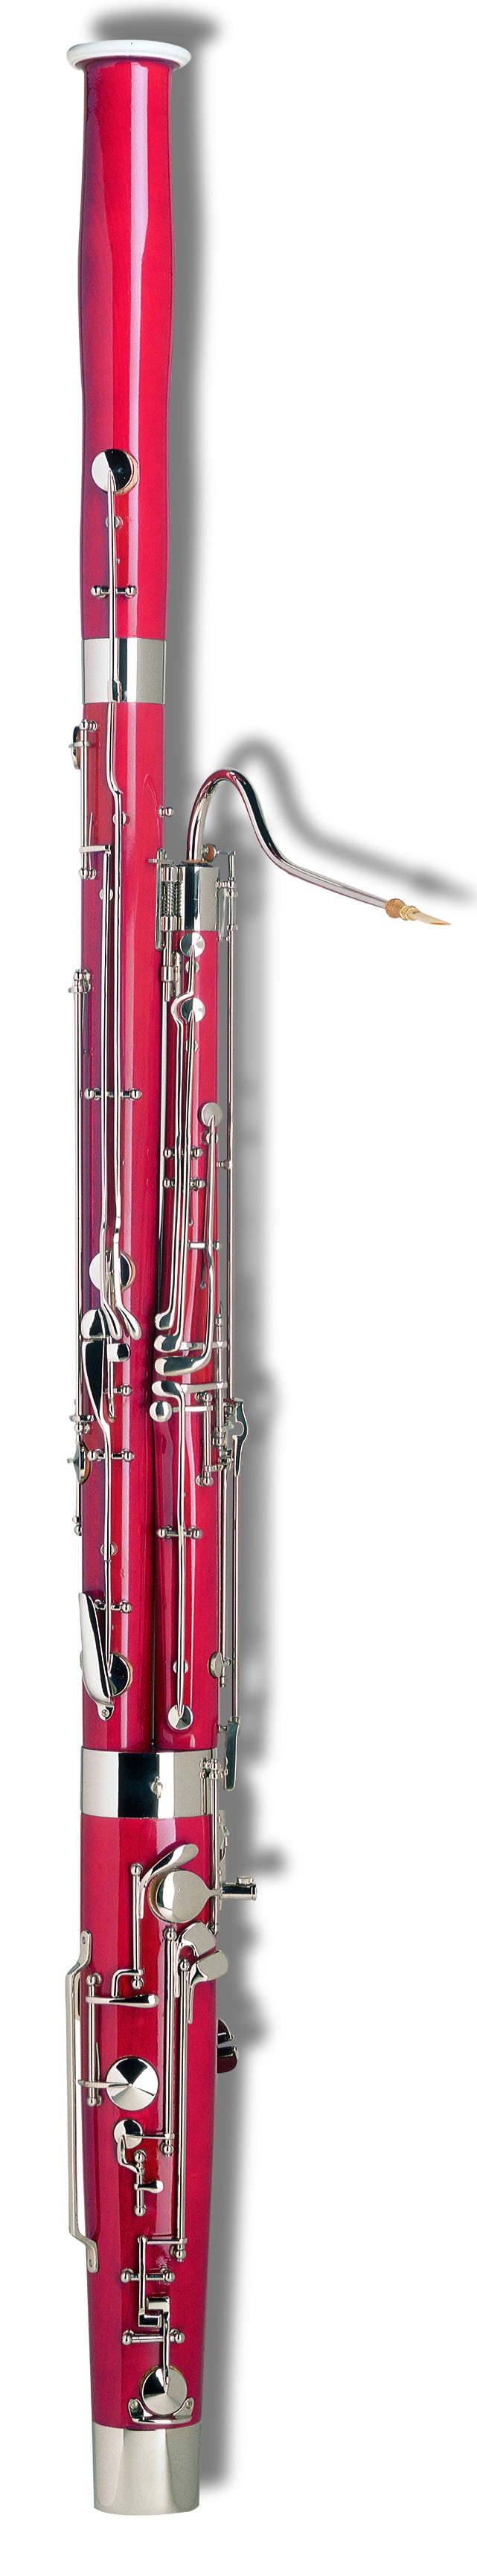 Selmer 132 Step Up Bassoon